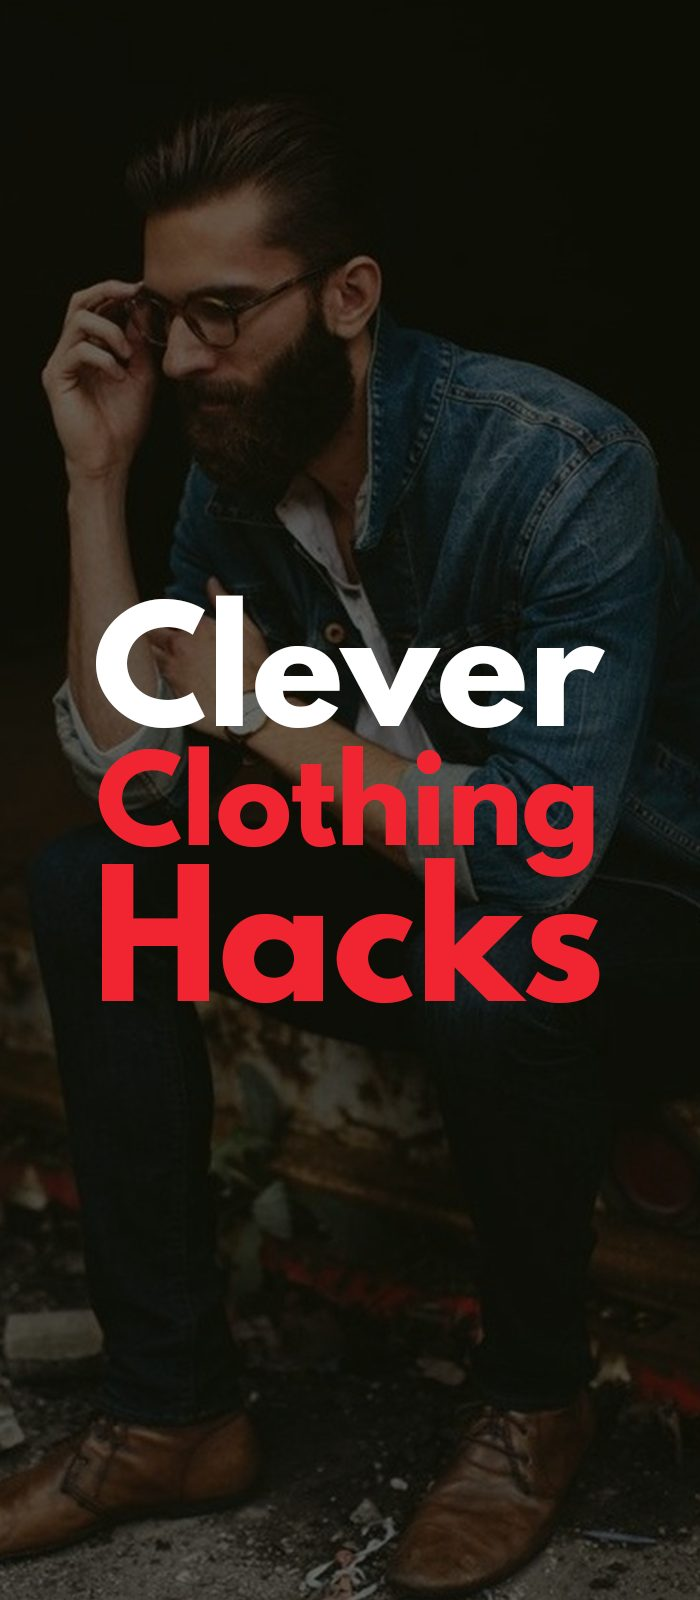 Clever Clothing Hacks